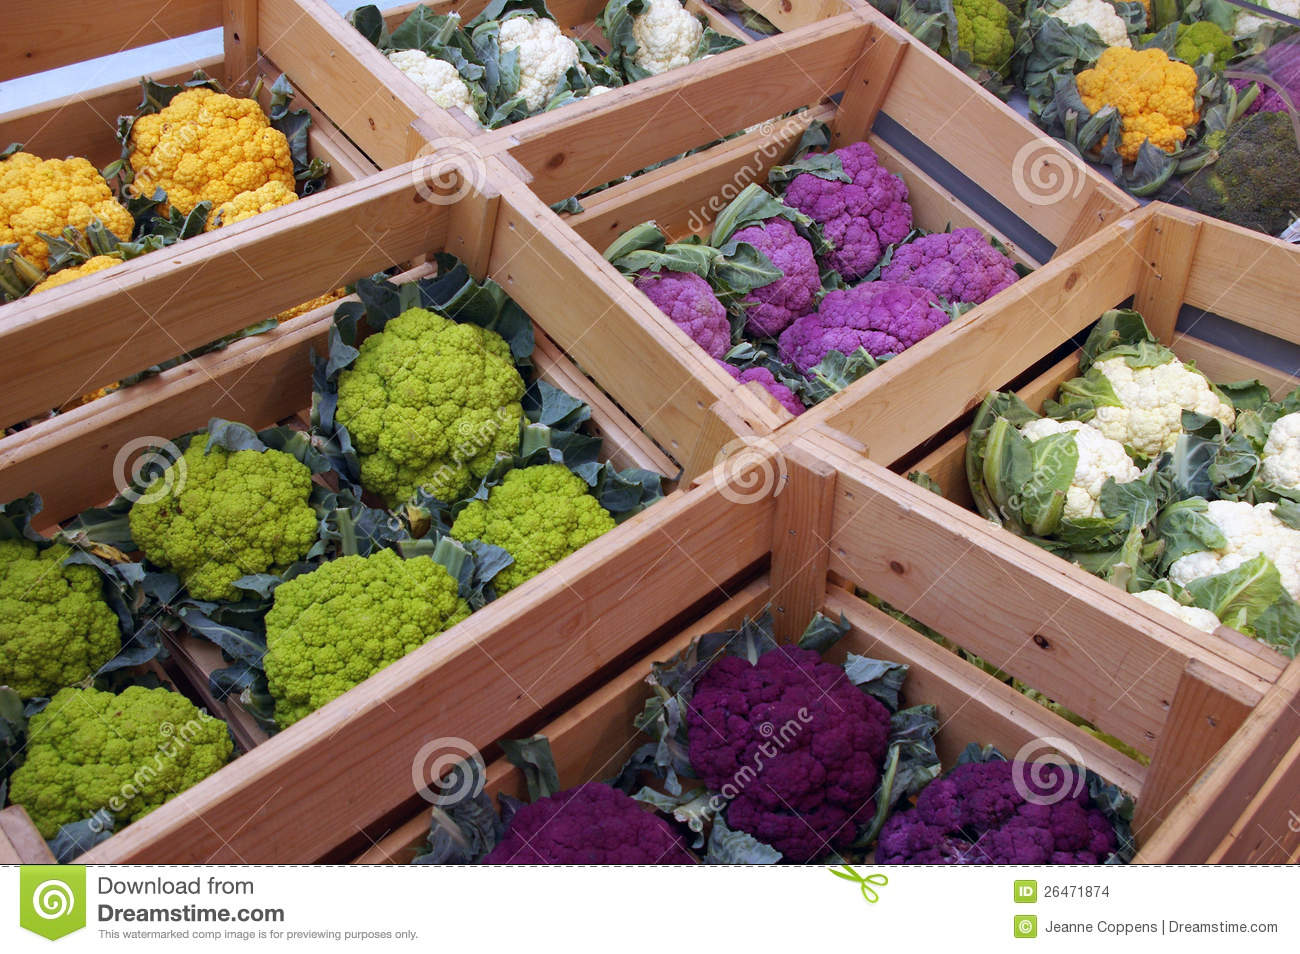 Cauliflowers of colors.